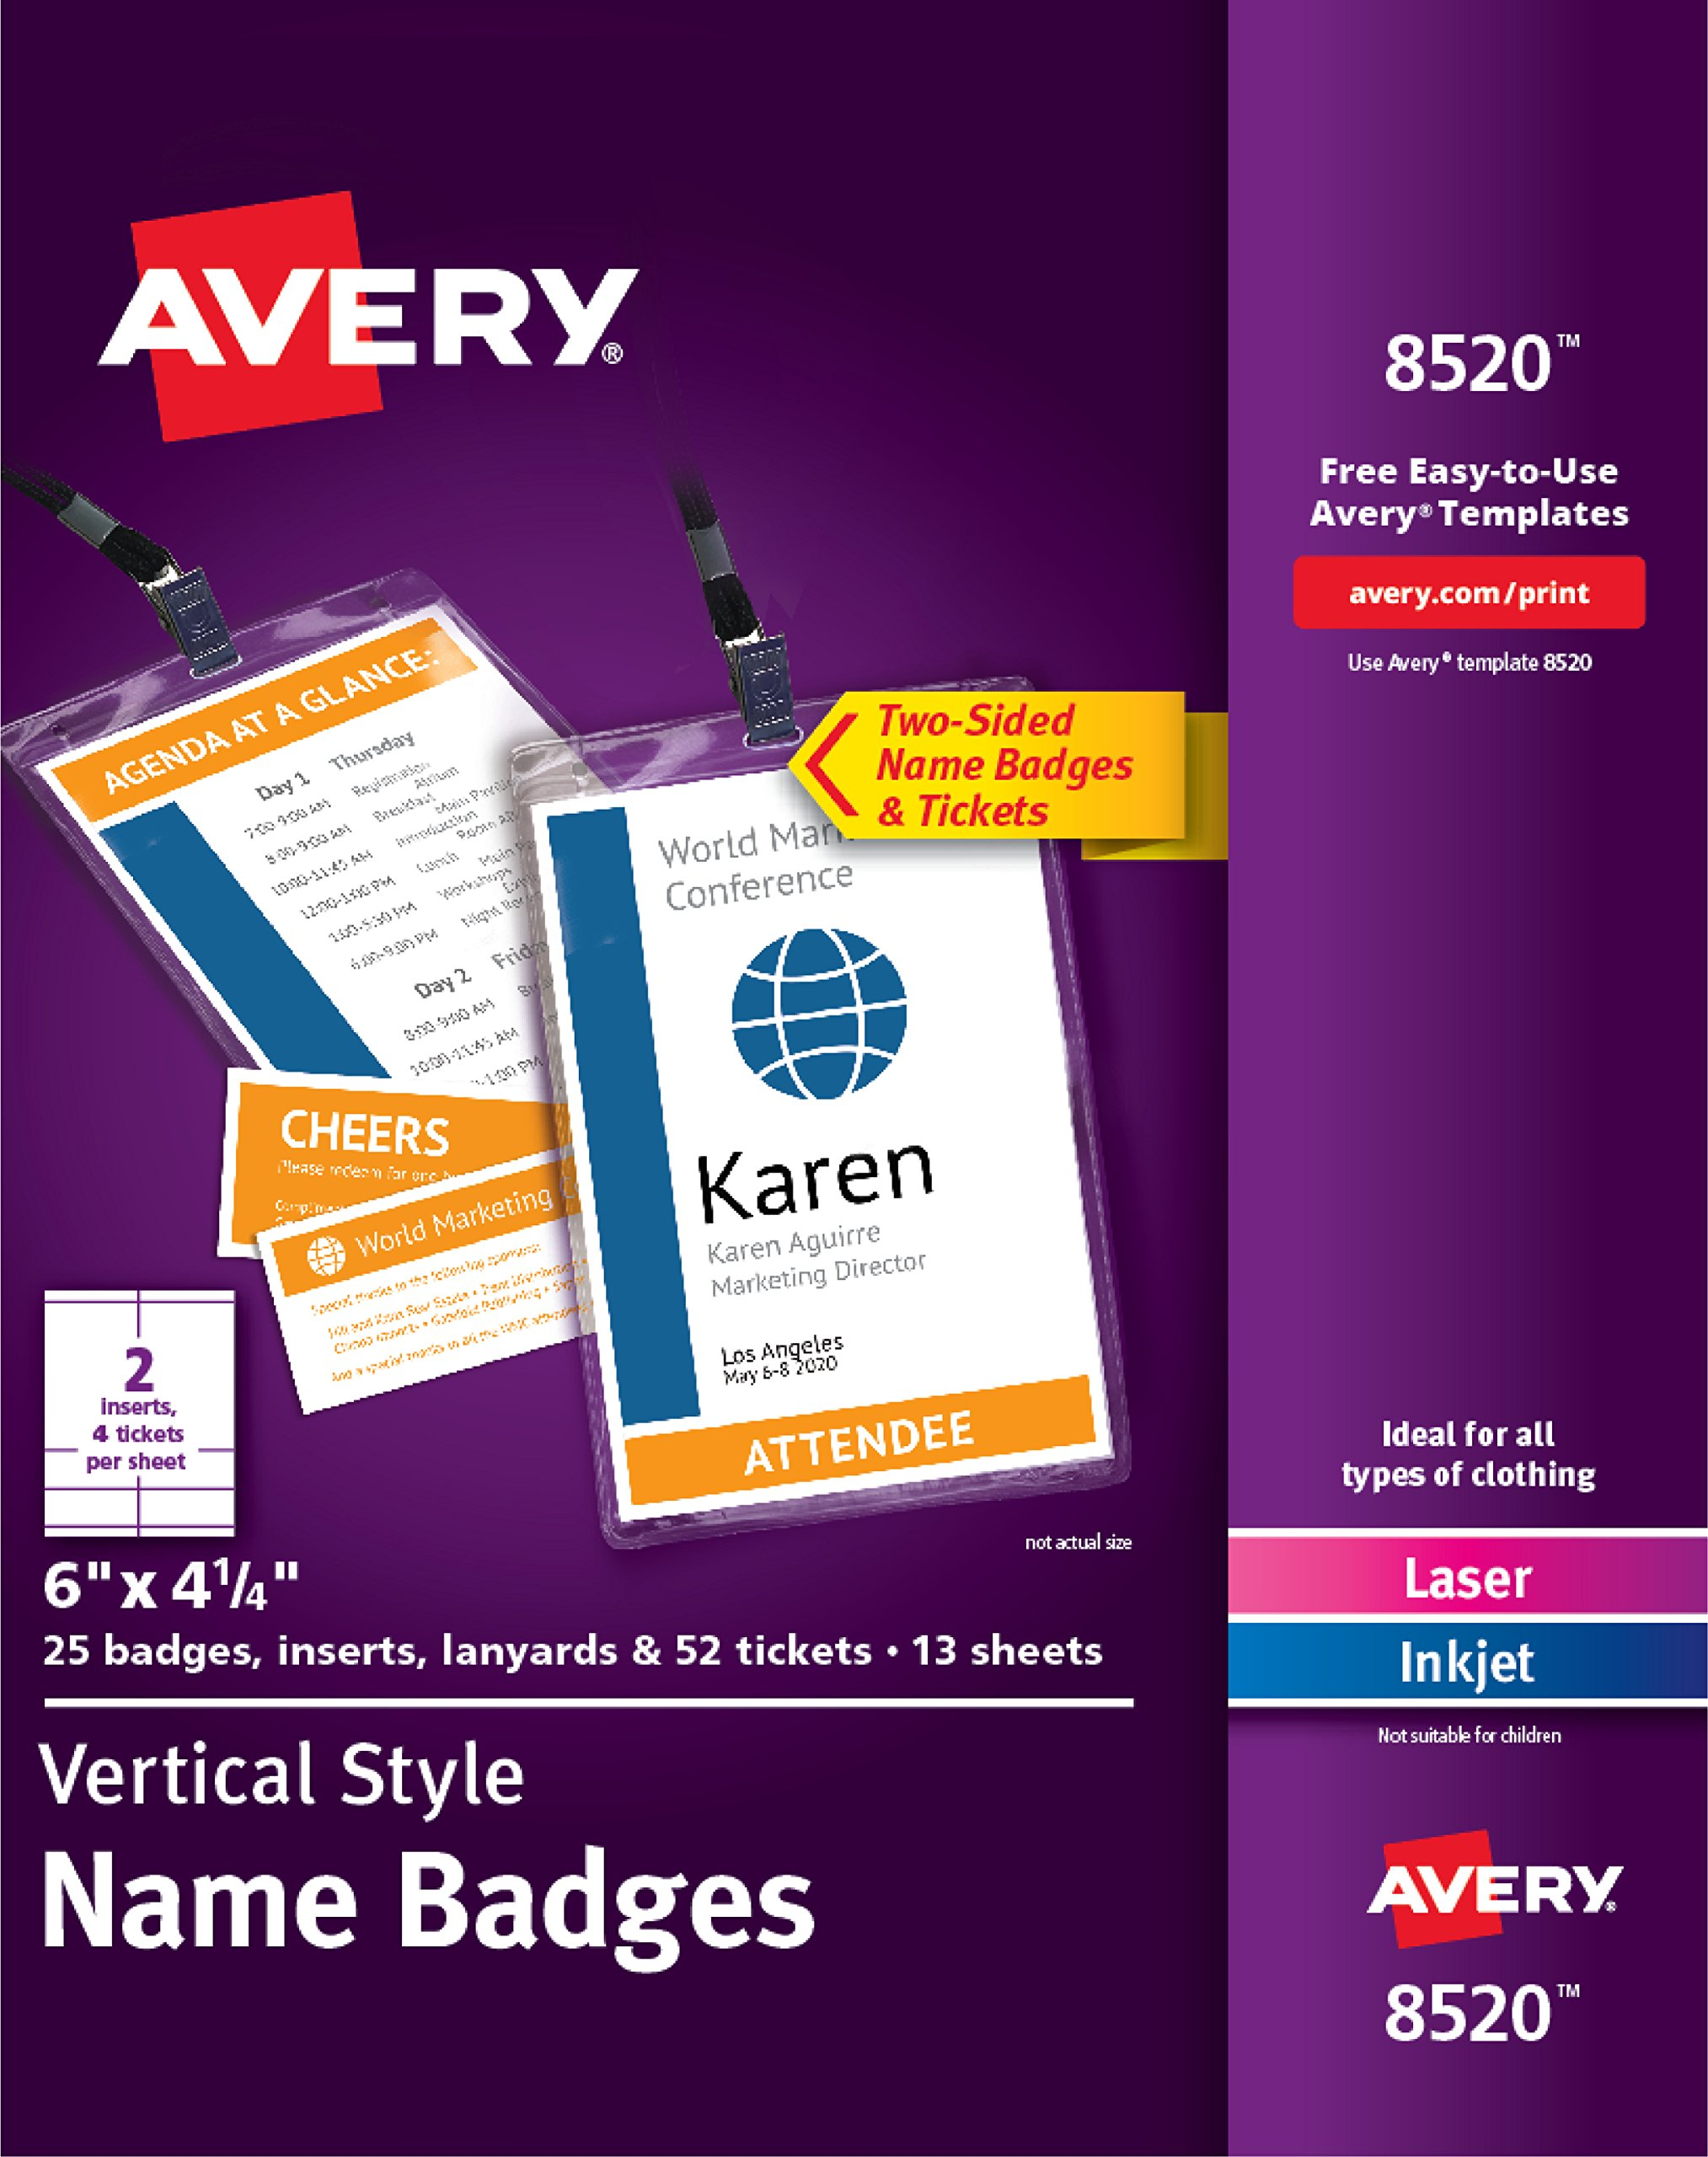 Avery Vertical Name Badges, Durable Plastic Holders, Lanyards, 6 x 4-1/4, 25 Badges (8520) by AVERY